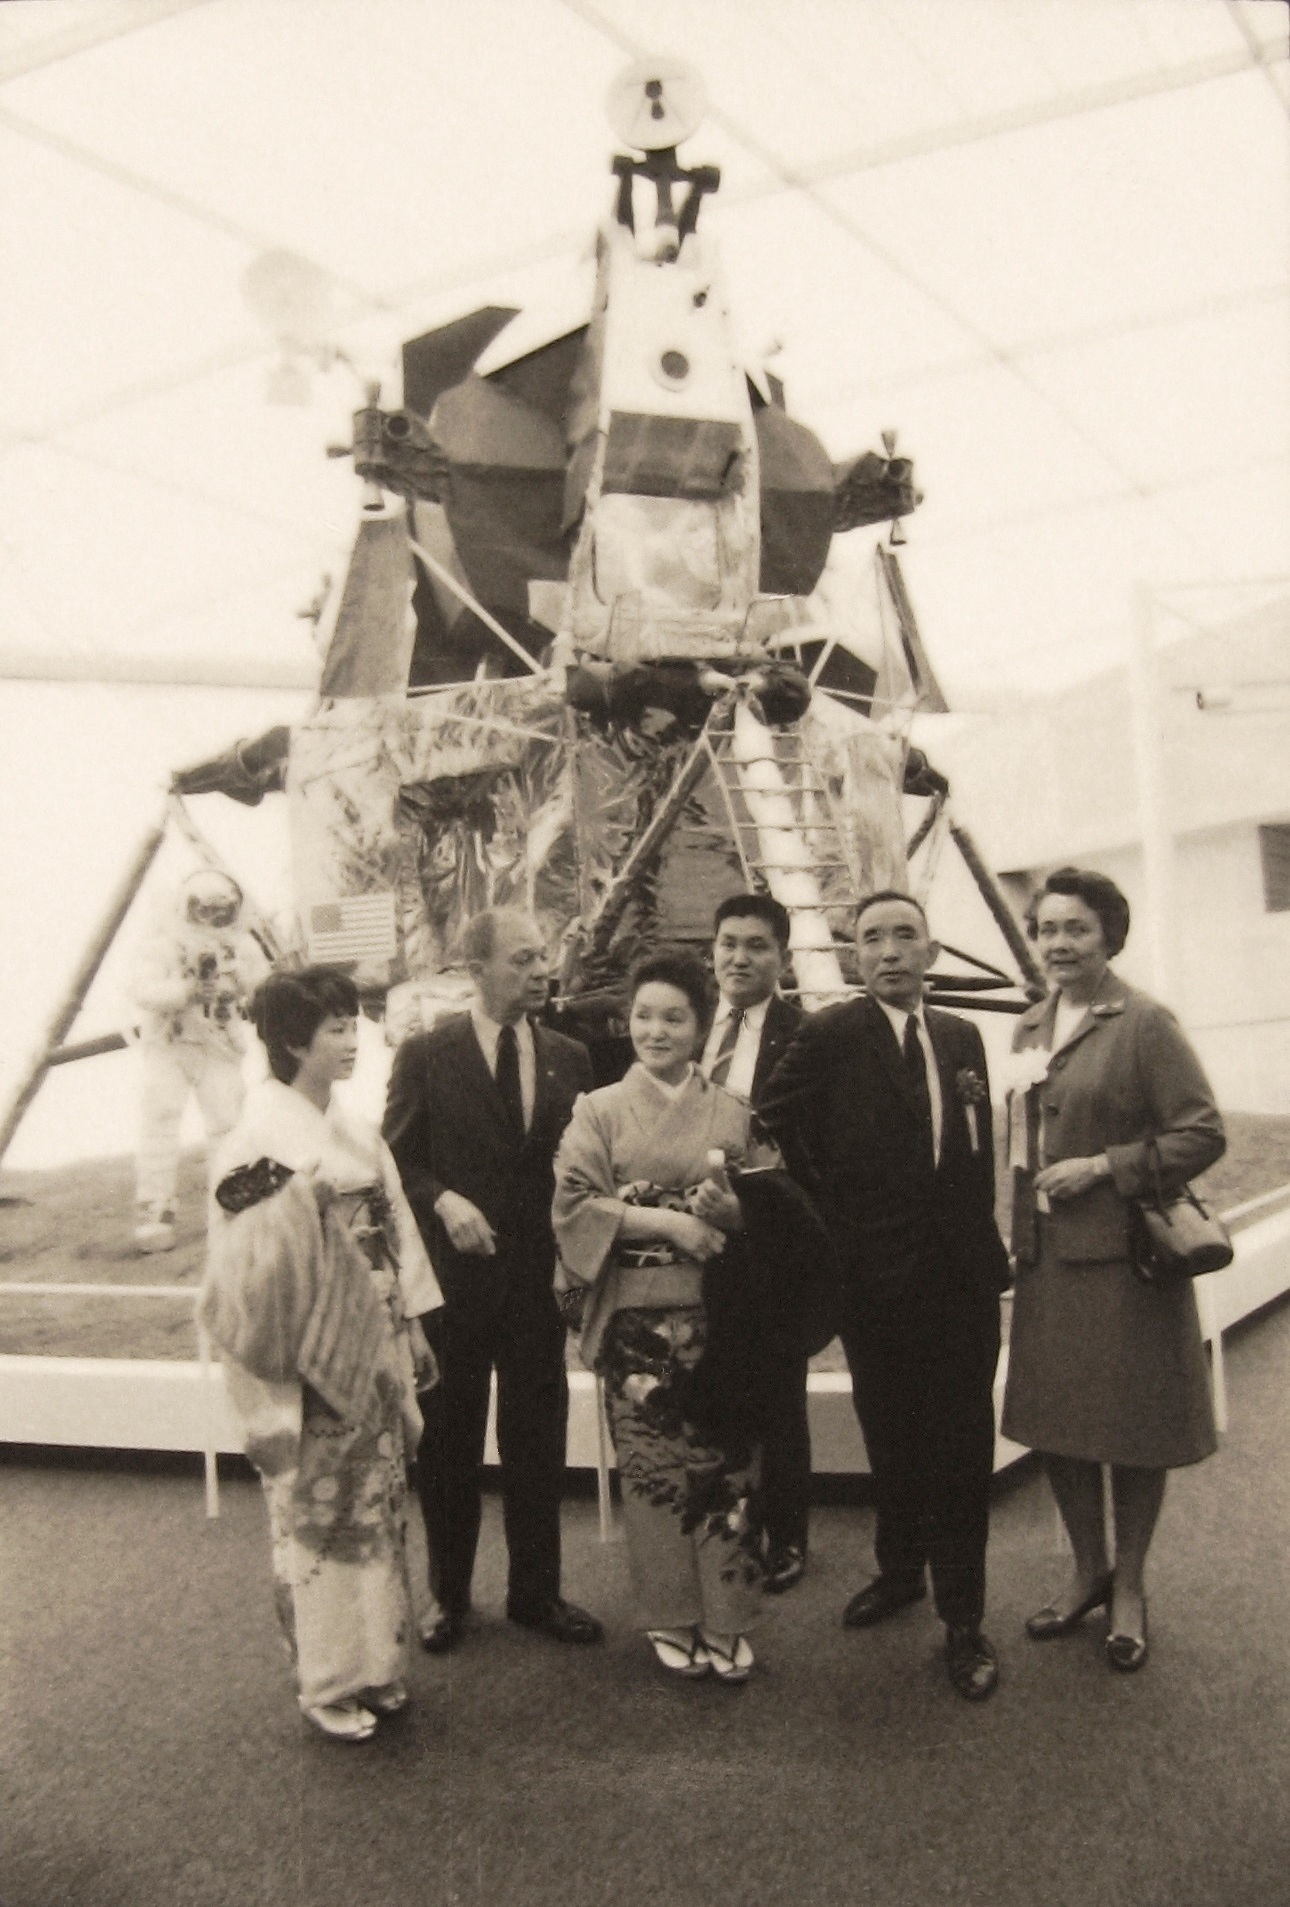 Black and white photo of dignitaries posing in front of the Lunar Module.